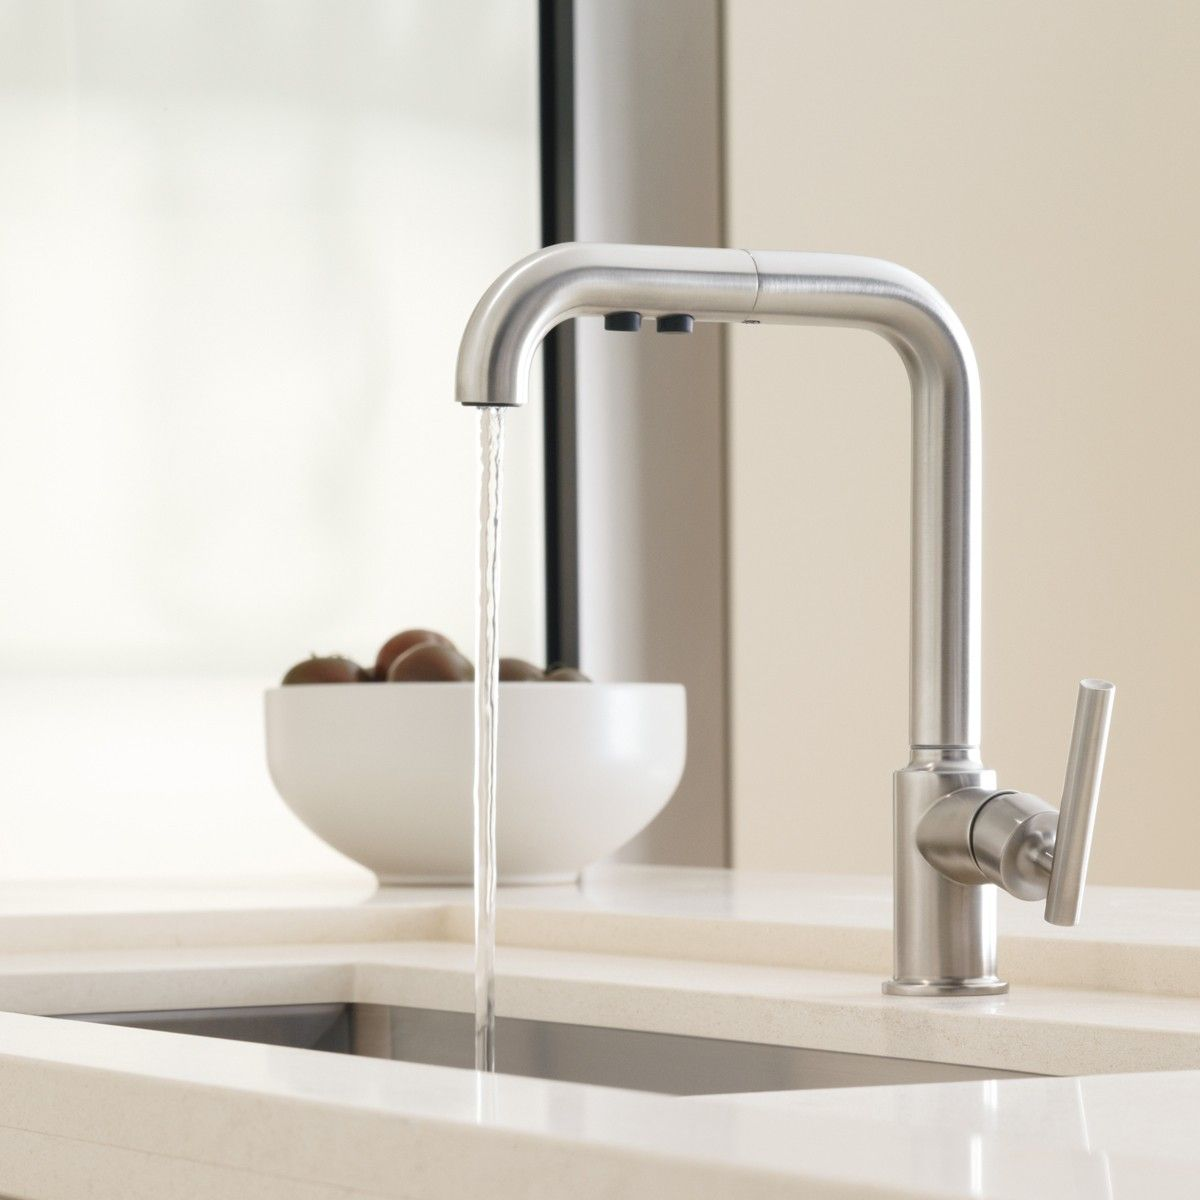 The KOHLER Purist Primary Pull-Out Kitchen Faucet is a luxurious ...